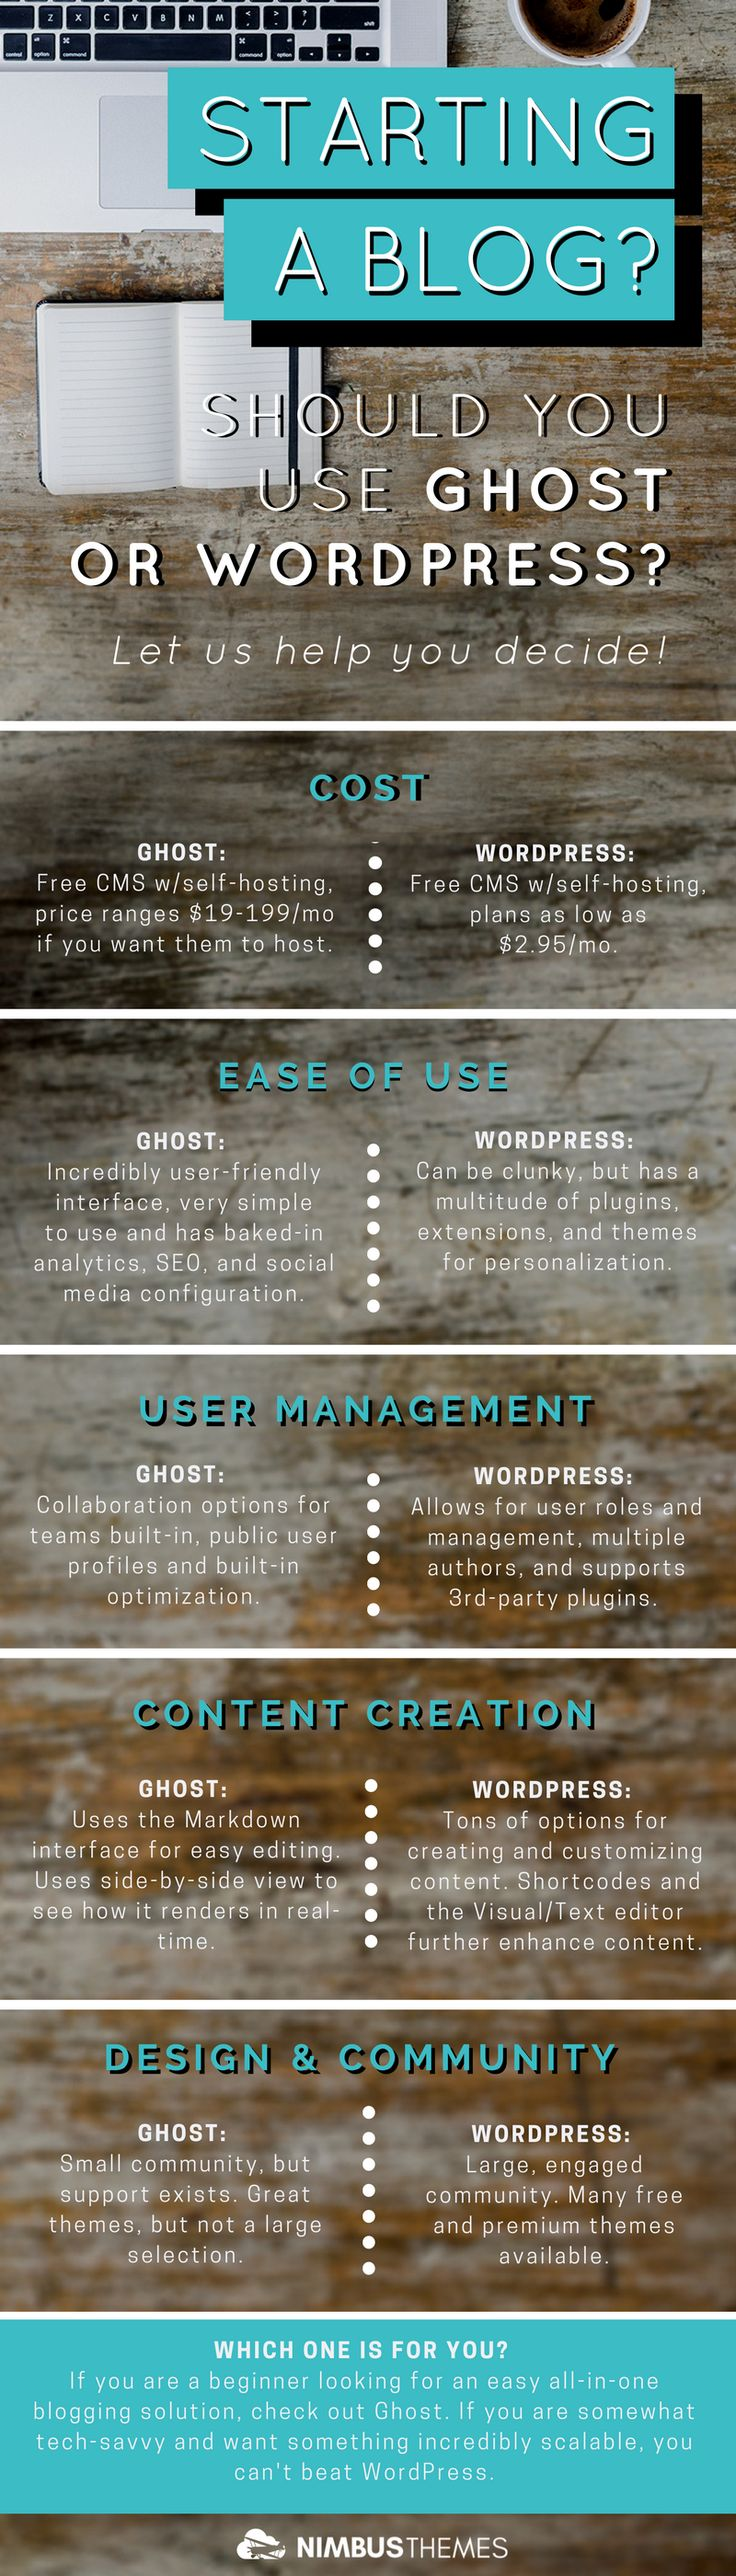 Are you starting a blog? Which CMS platform should you use? Check out this infographic that compares WordPress and Ghost, to help you decide.